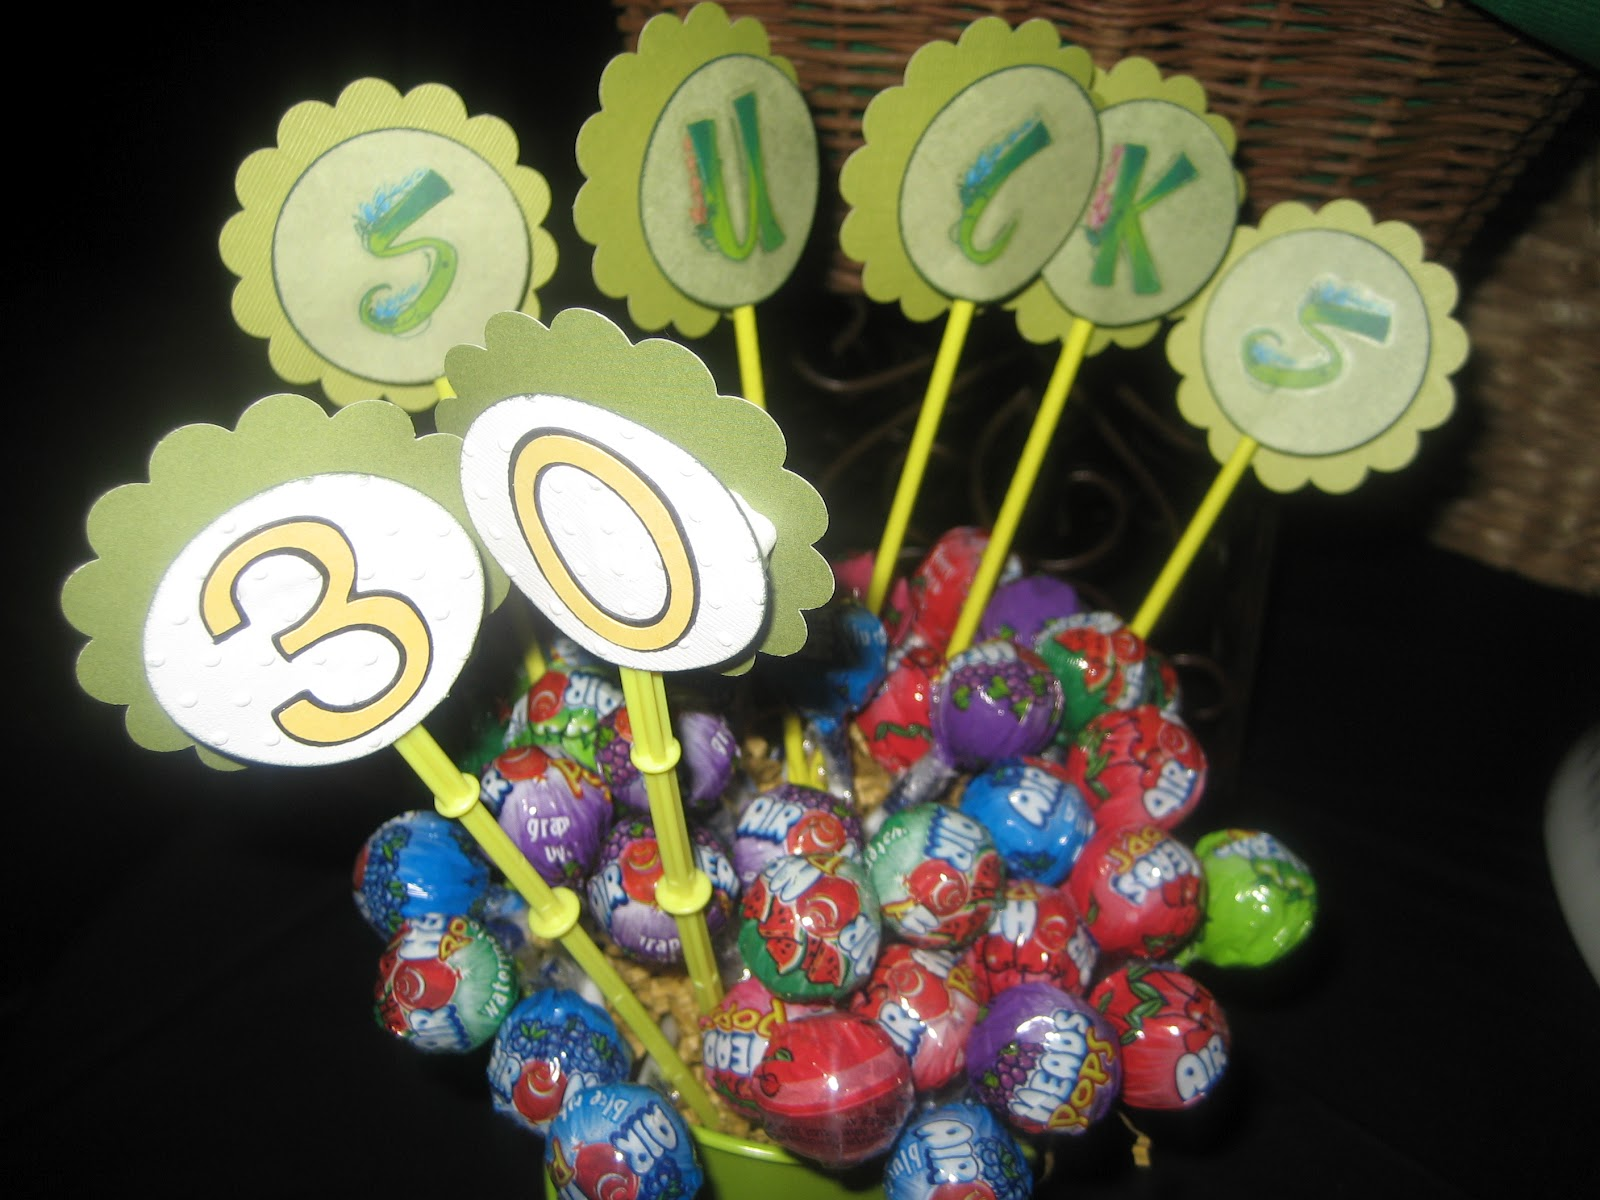 Cooking with jilly golf themed 30th birthday party for 30th birthday party decoration ideas